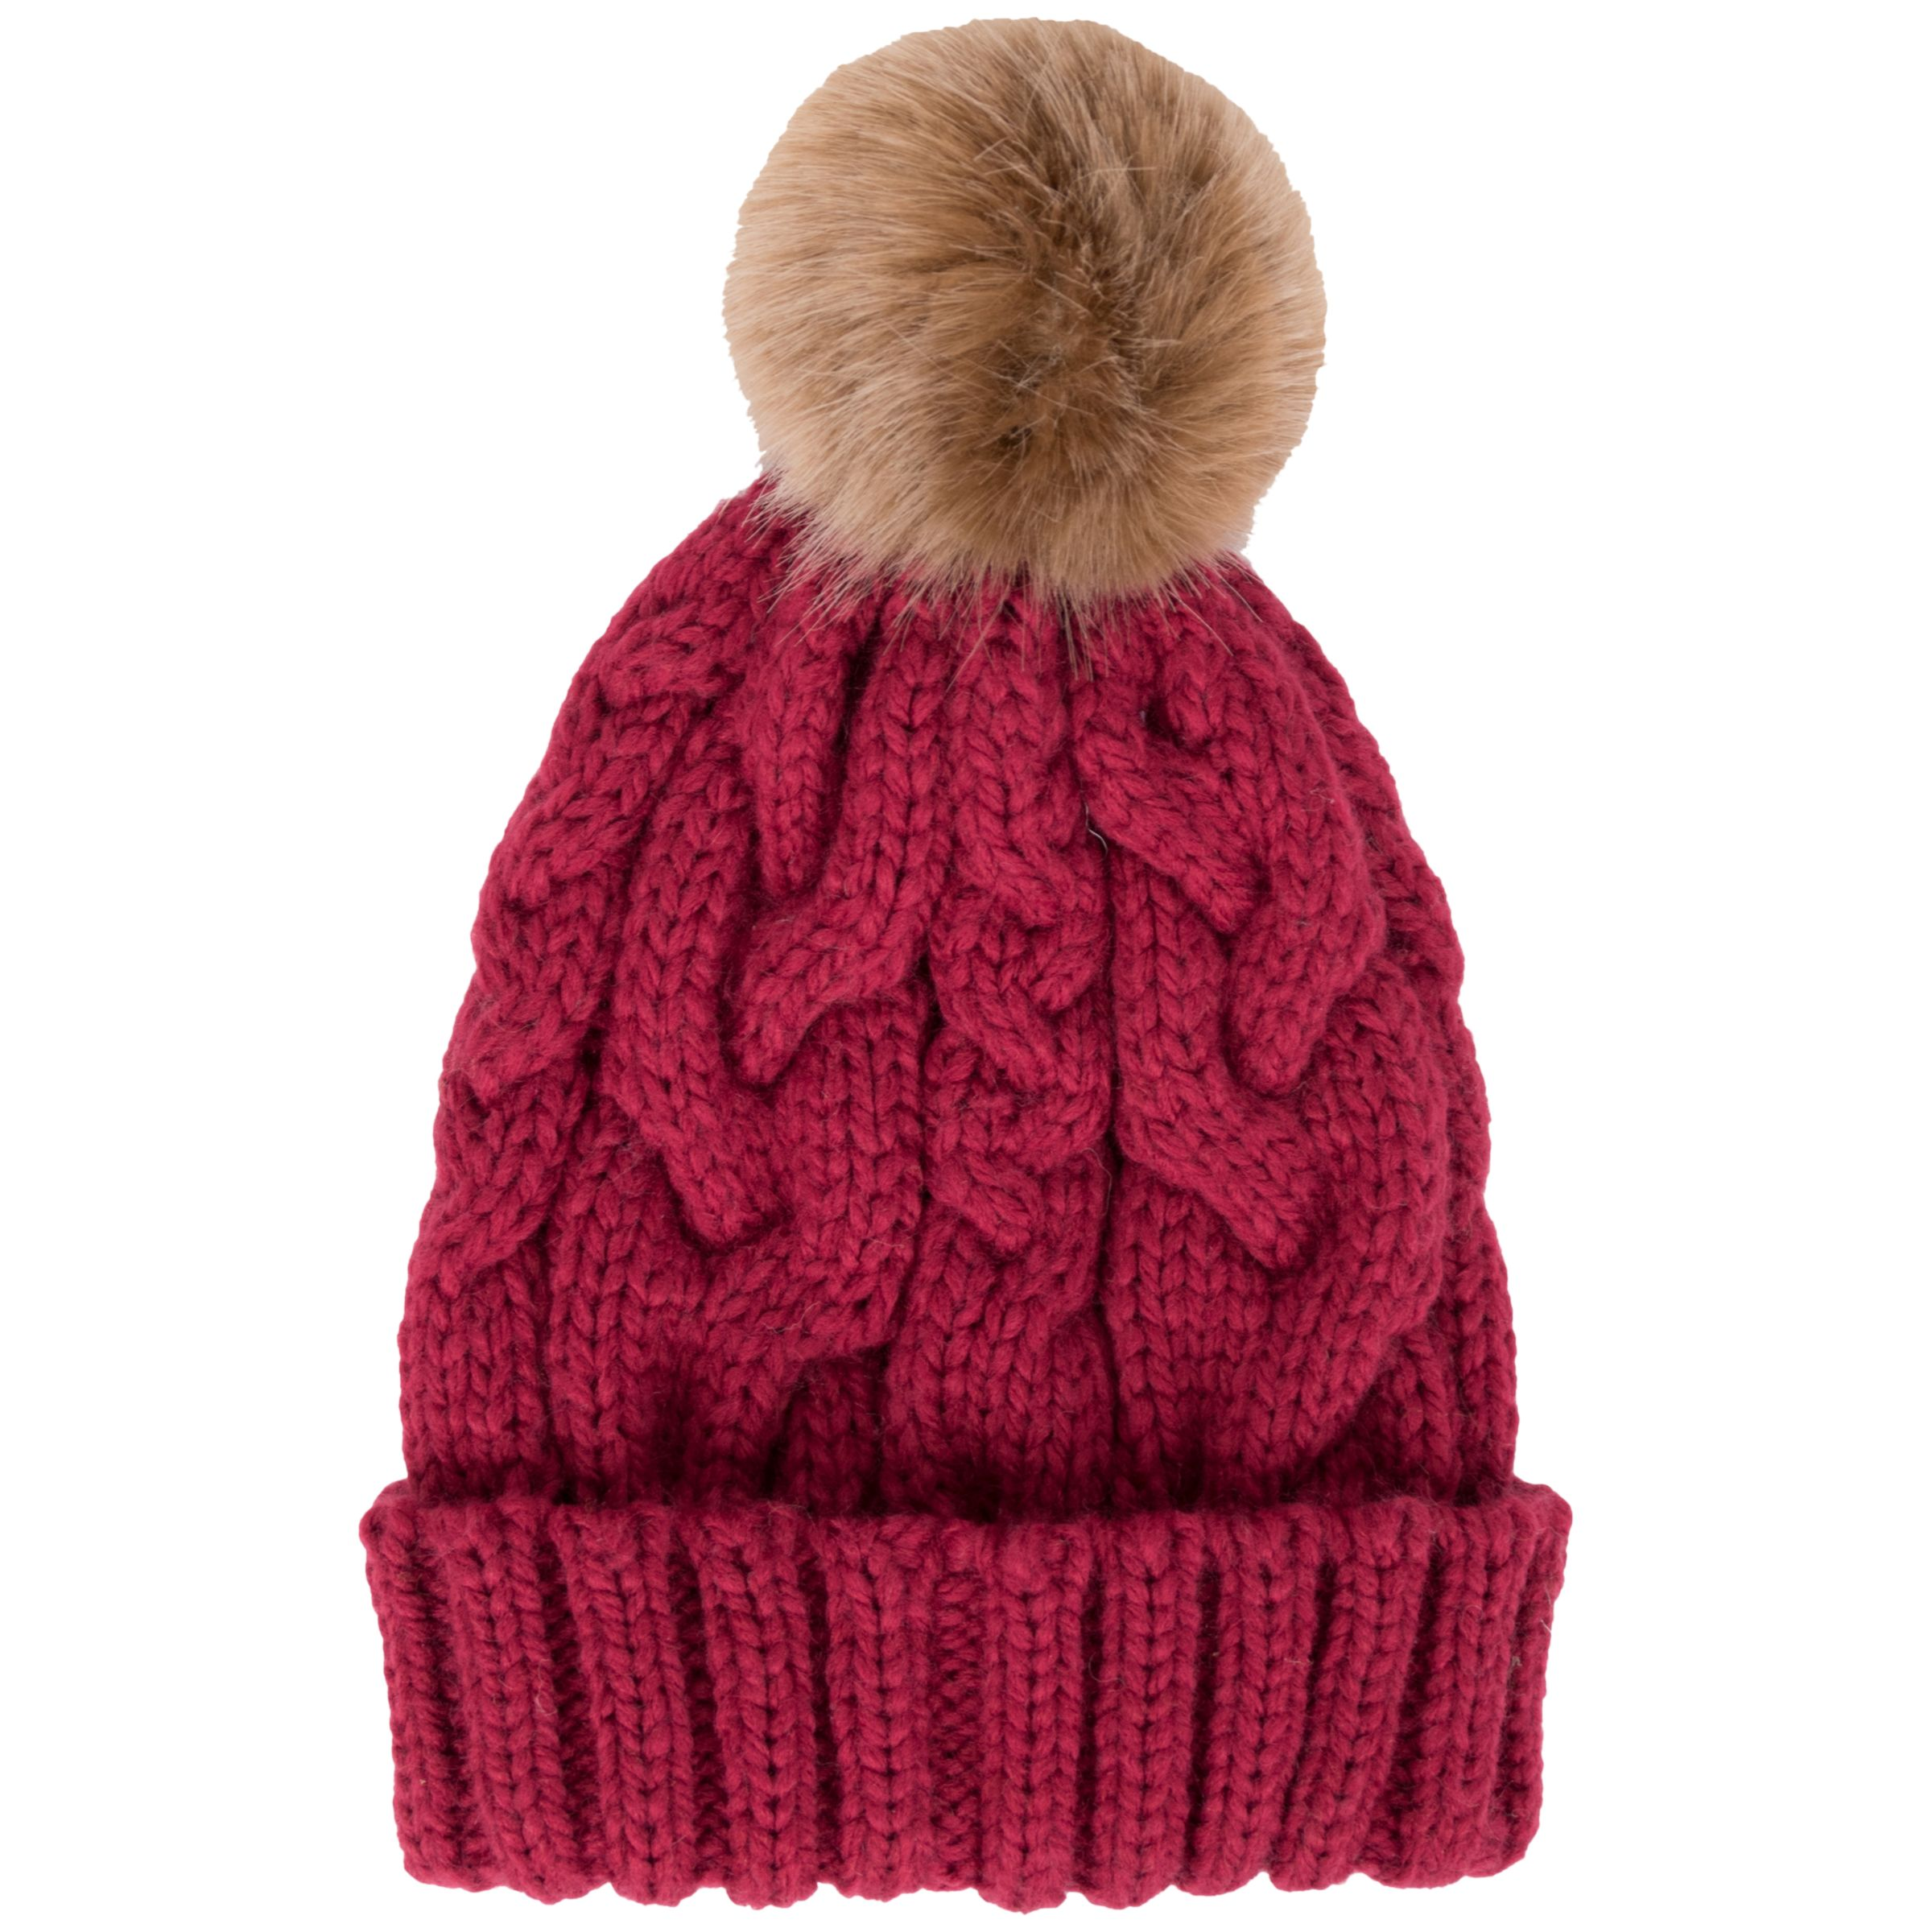 d2c1659e629 Powder Charlotte Cable Knit Faux Fur Pom Pom Beanie Hat at John ...